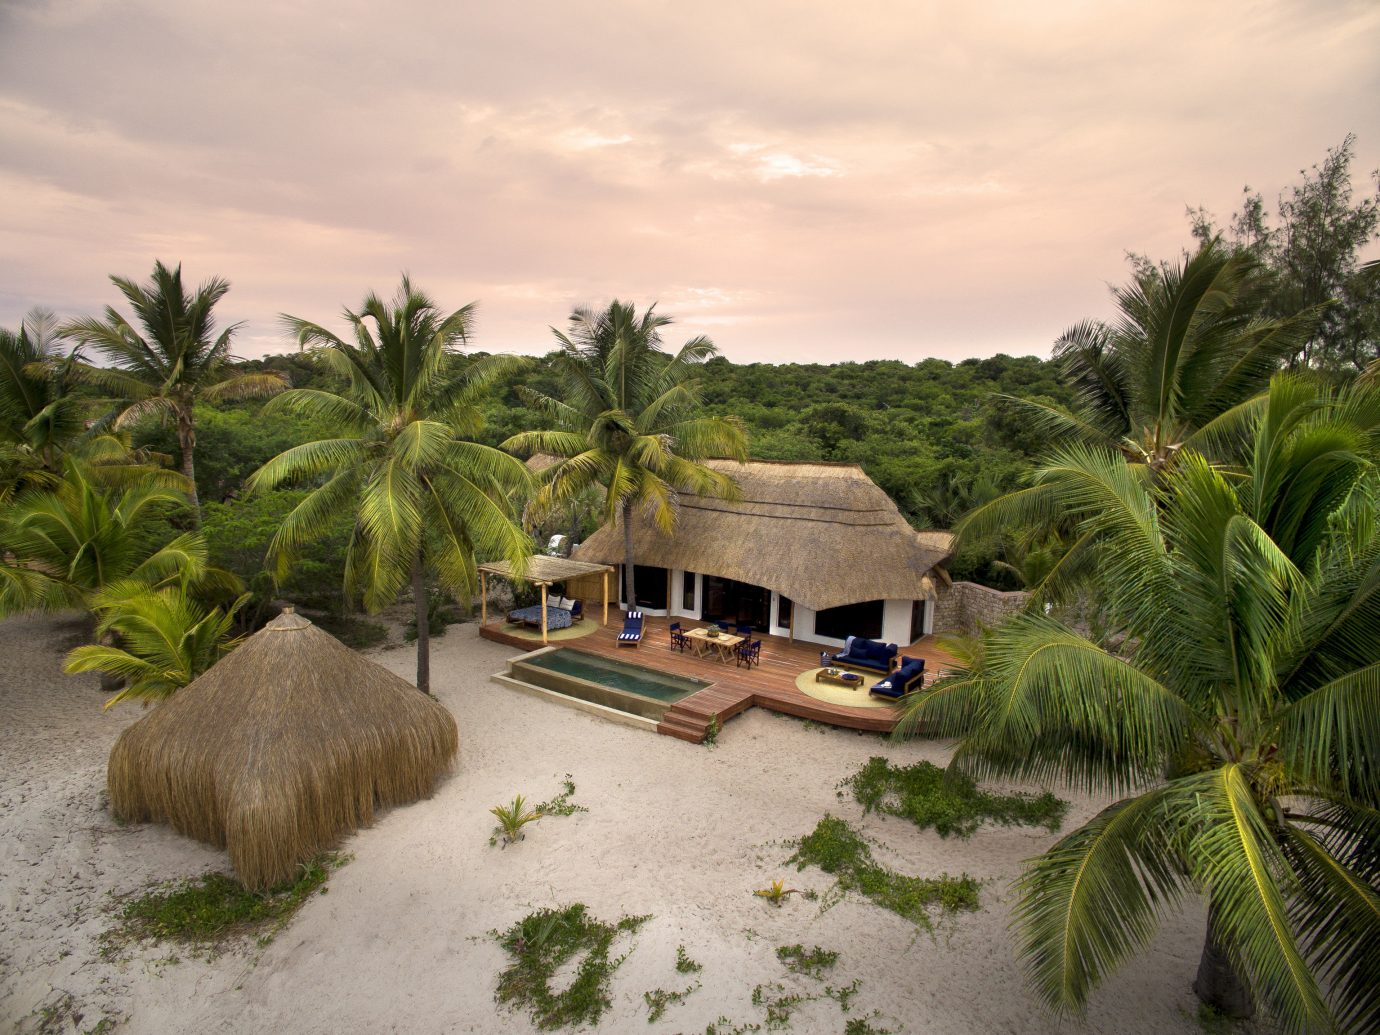 Trip Ideas tree sky outdoor Resort vacation palm estate plant arecales tropics Beach landscape Jungle home caribbean palm family surrounded sandy